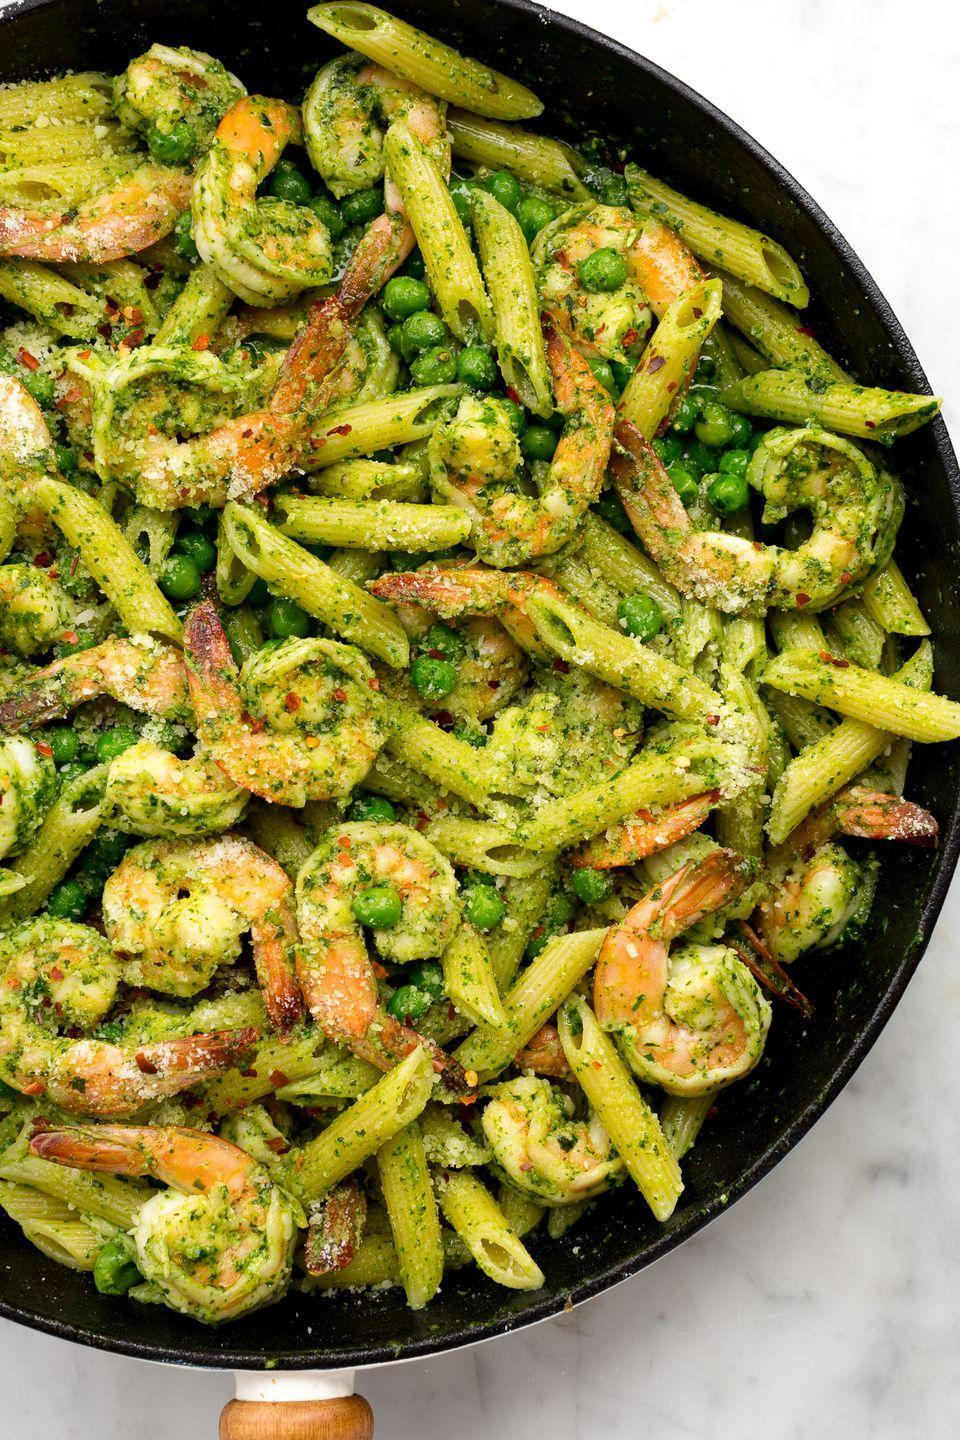 """<p>Pesto nuts will love this fresh spring combo of spinach, basil, and sweet peas. </p><p>Get the recipe from <a href=""""https://www.delish.com/cooking/recipe-ideas/recipes/a46530/spinach-pesto-penne-with-shrimp-and-peas-recipe/?visibilityoverride"""" rel=""""nofollow noopener"""" target=""""_blank"""" data-ylk=""""slk:Delish"""" class=""""link rapid-noclick-resp"""">Delish</a>.</p>"""